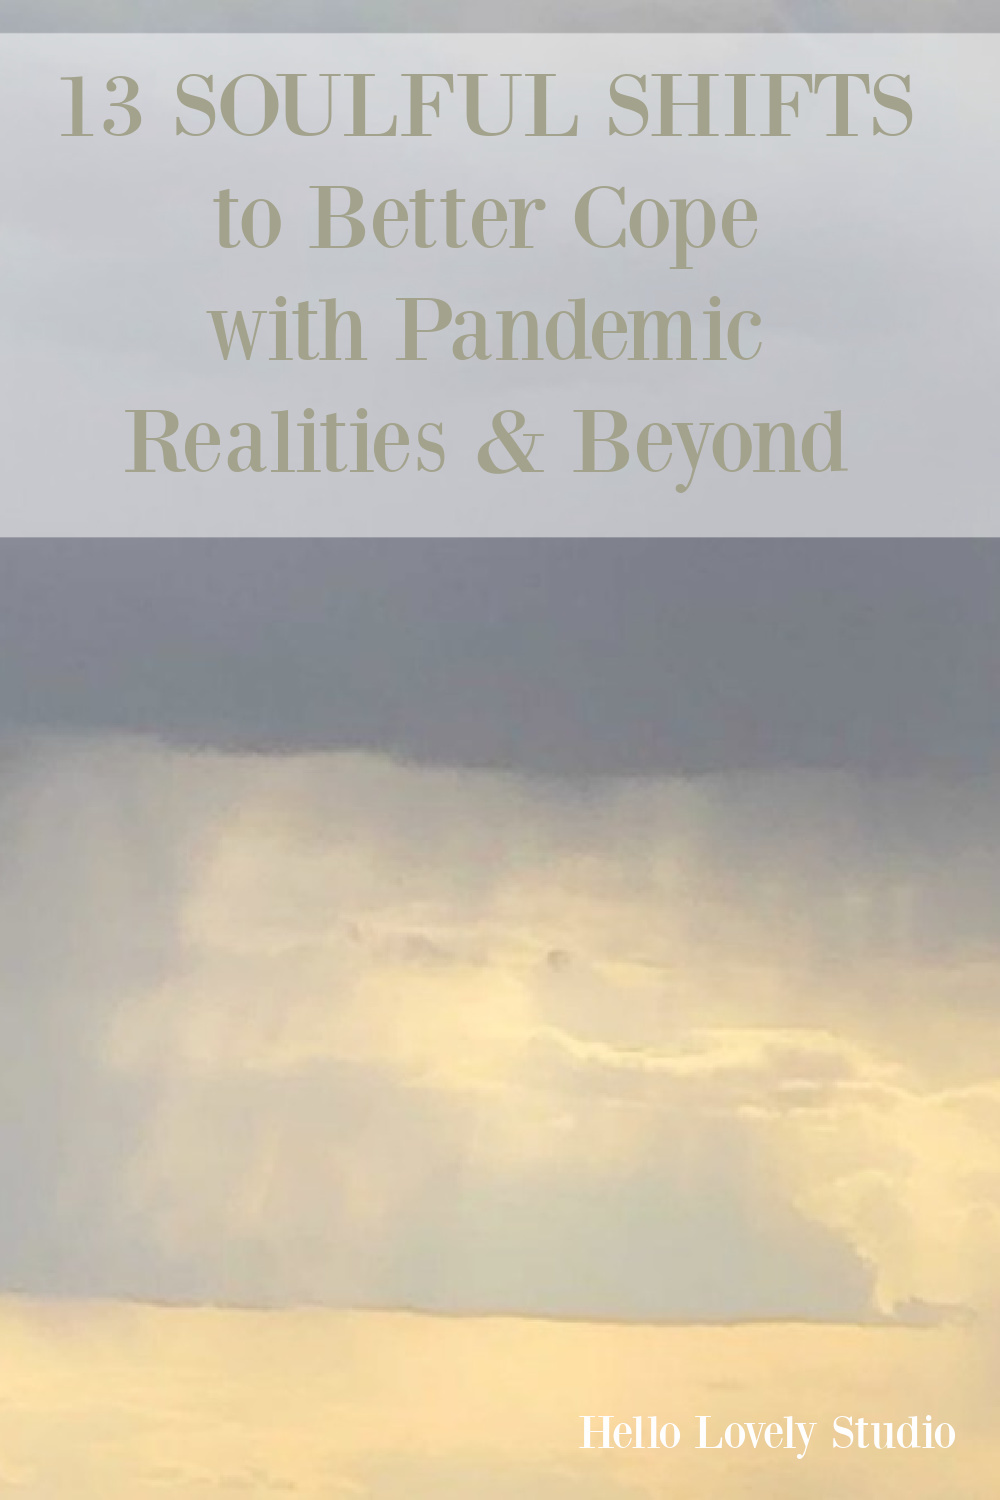 13 Soulful Shifts to Better Cope With Pandemic Realities & Beyond - spiritual and contemplative themed thoughts and ideas from Hello Lovely Studio. #contemplative #coping #spirituality